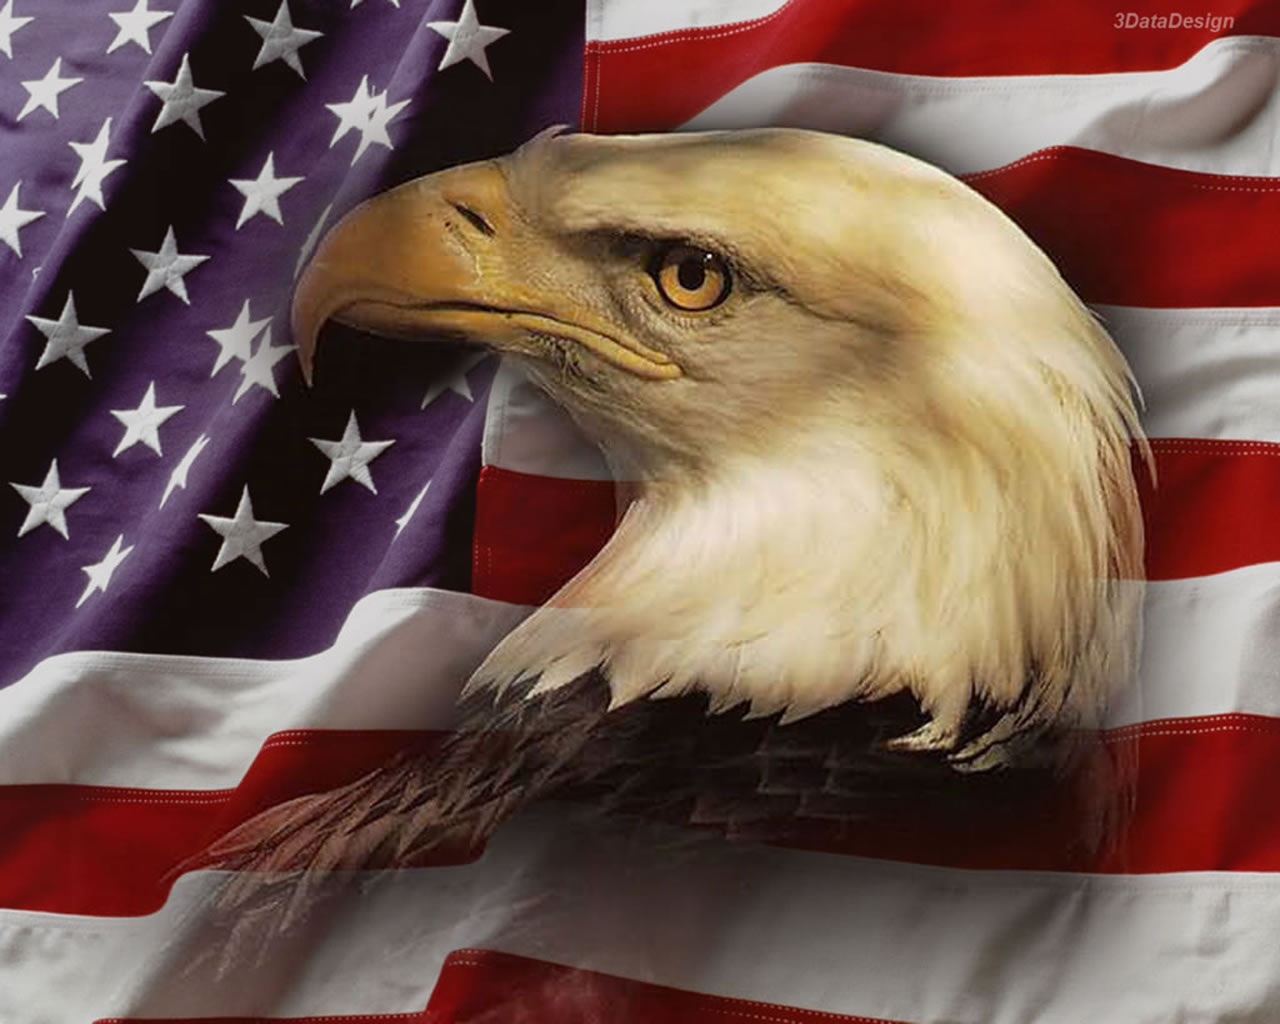 American Flag Background with Eagle wallpaper wallpaper hd 1280x1024